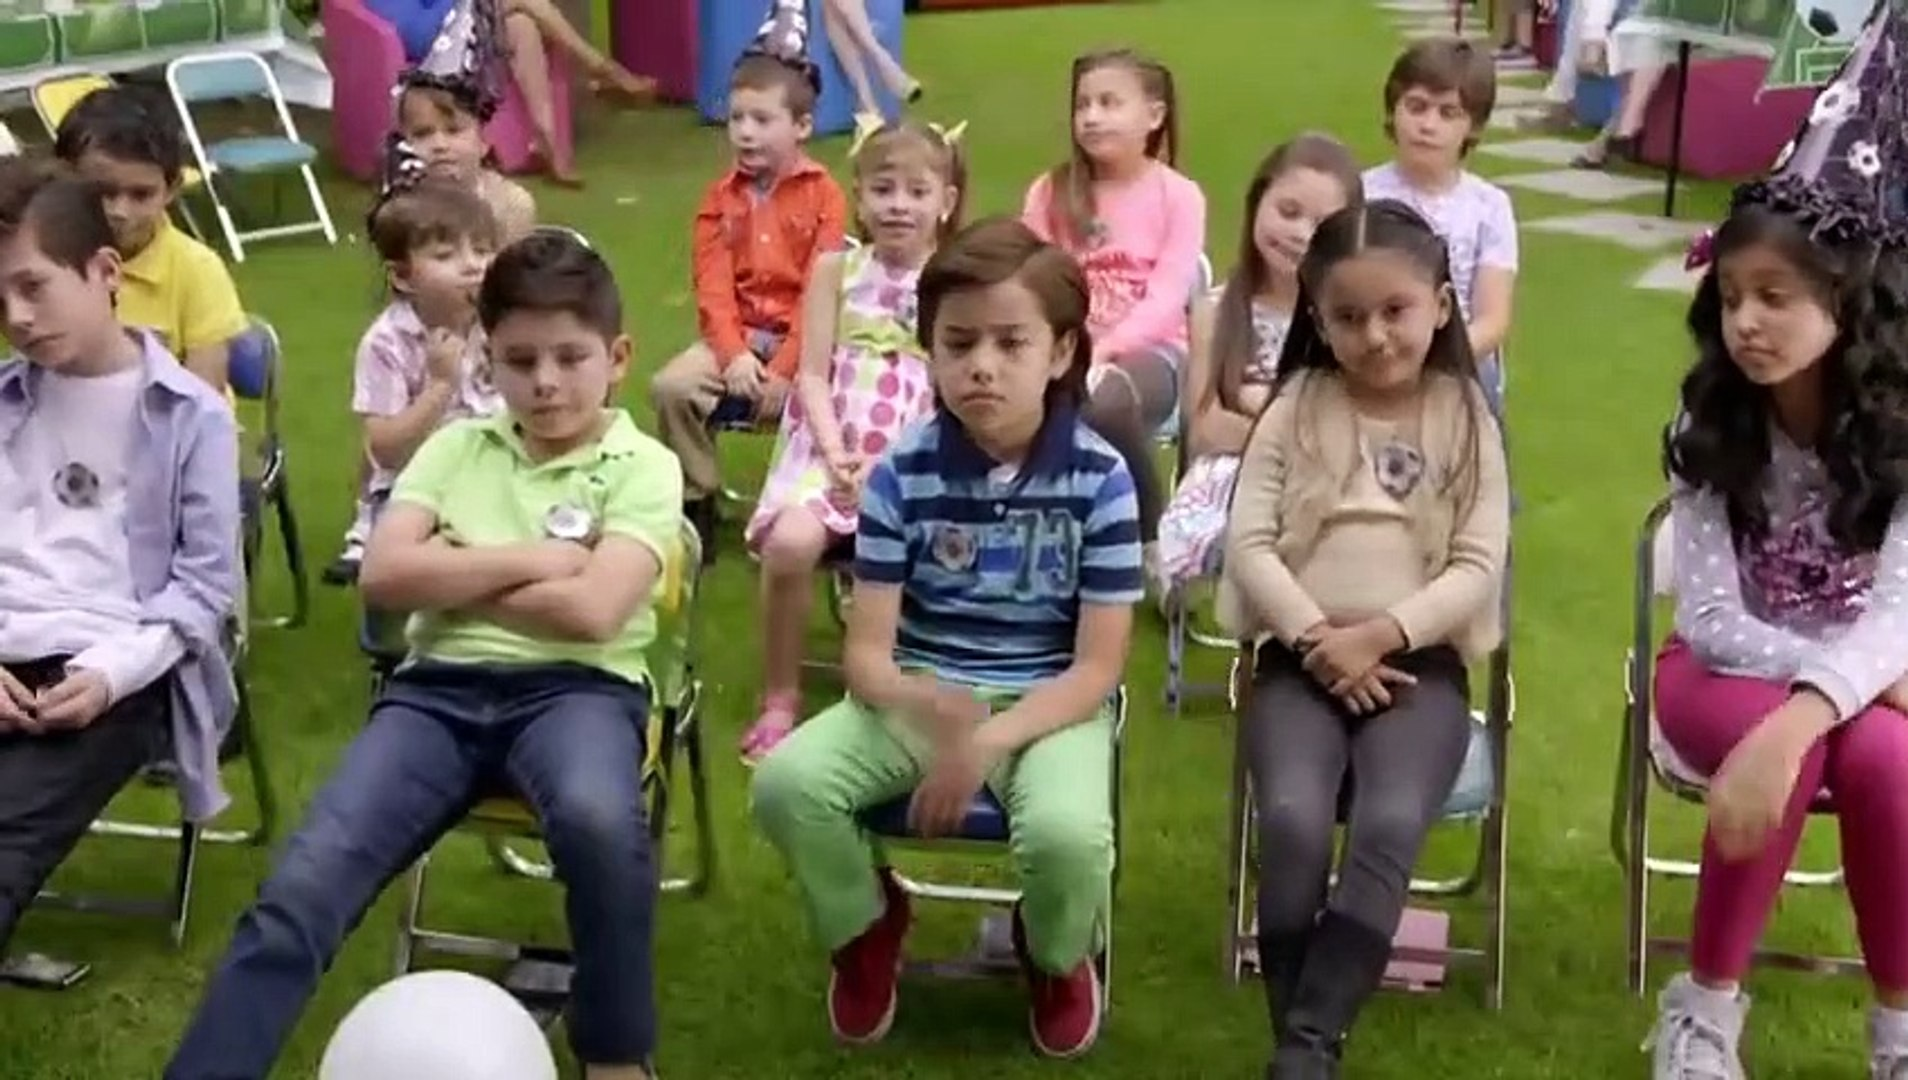 Nosotros Los Guapos Temporada 1 Capitulo 3 Payasos De Fiestas Infantiles Video Dailymotion Vítor and albertano pursue the same objective, to obtain a place where to live and, very to their regret. dailymotion